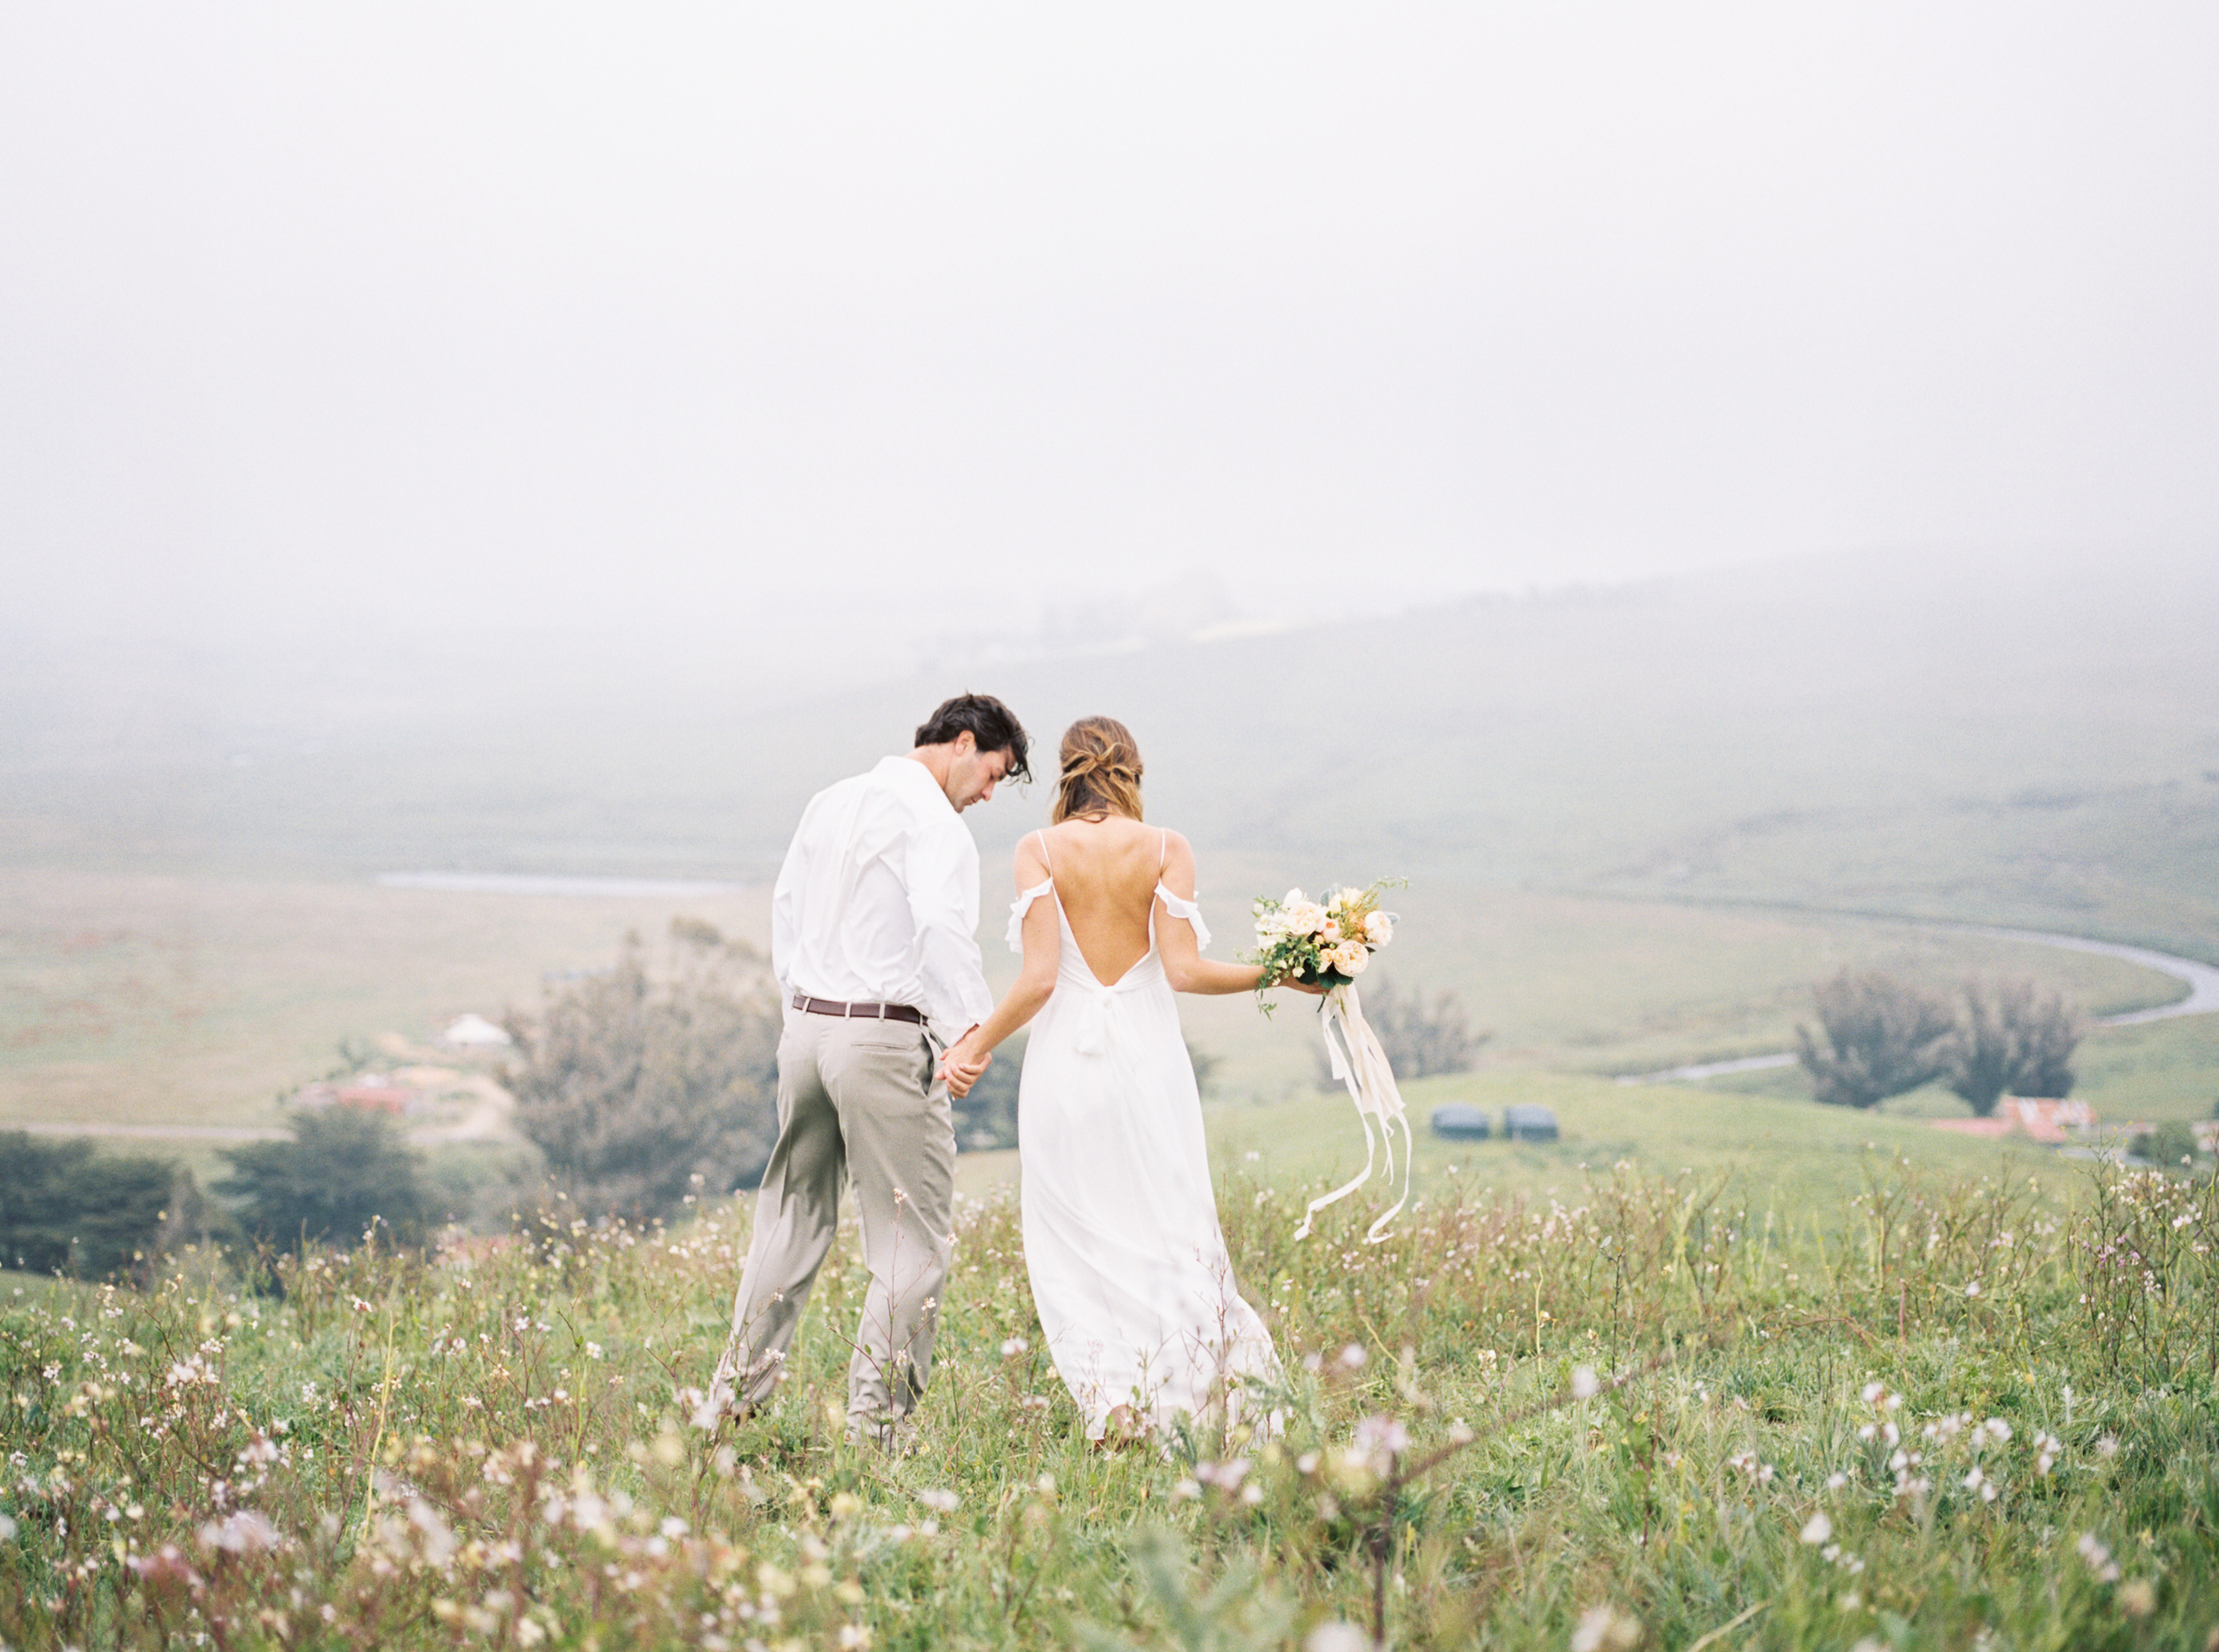 Danford-Photography-Bozeman-Montana-California-Wedding-Engagement-Photographer-40.jpg